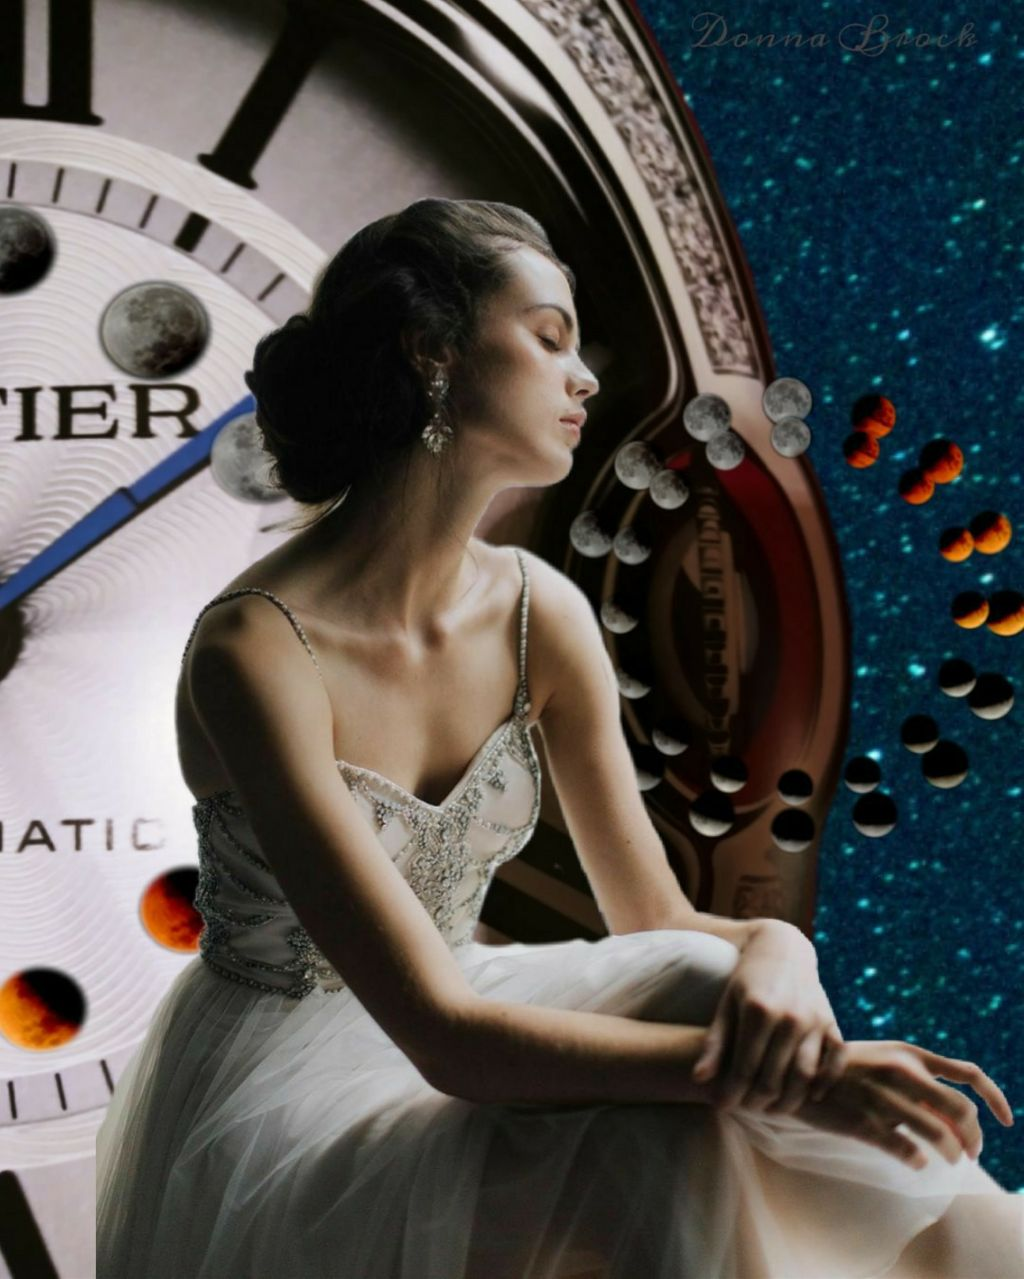 TIME KEEPS ALL THINGS ... GOOD AND BAD  MOON CYCLE ...   #moons #clock #clocks #woman #night  #freetoedit  #srcmooncycle #mooncycle